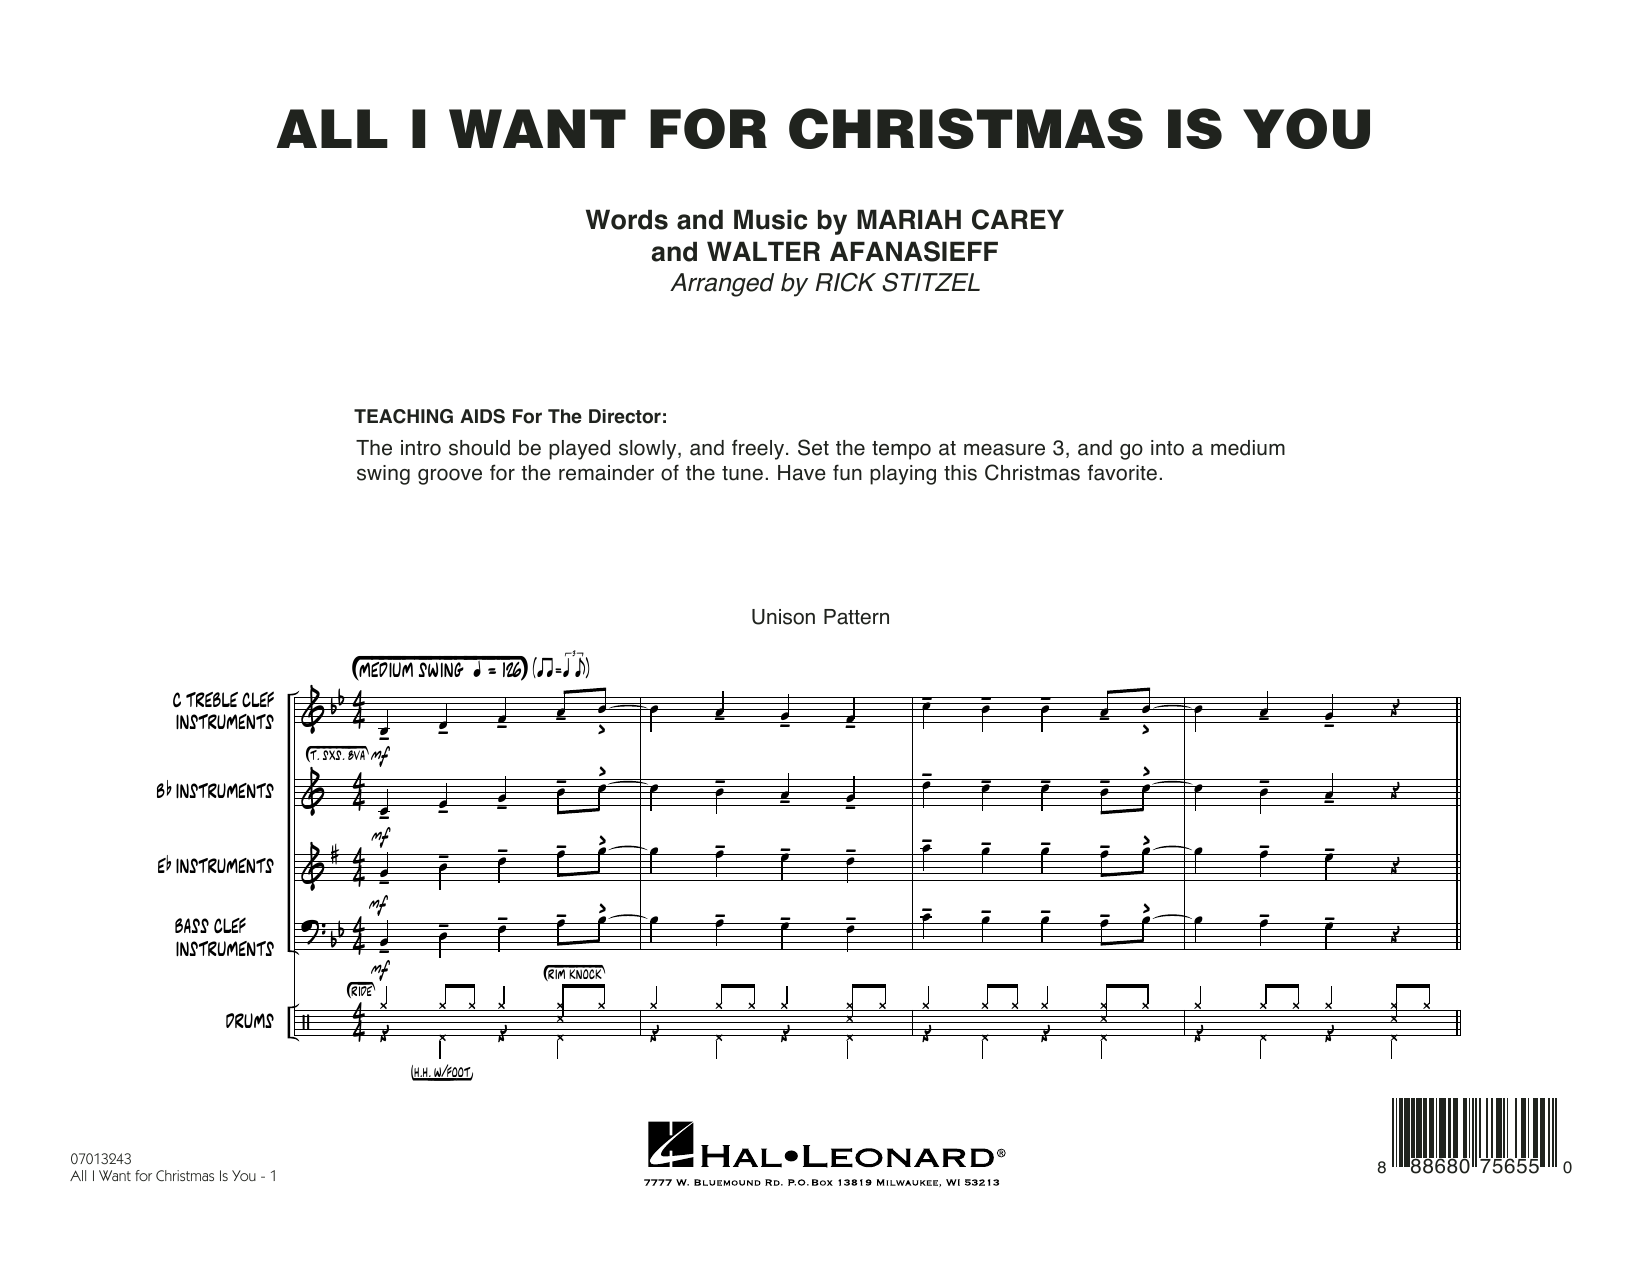 Rick Stitzel All I Want For Christmas Is You - Conductor Score (Full Score) sheet music notes and chords. Download Printable PDF.